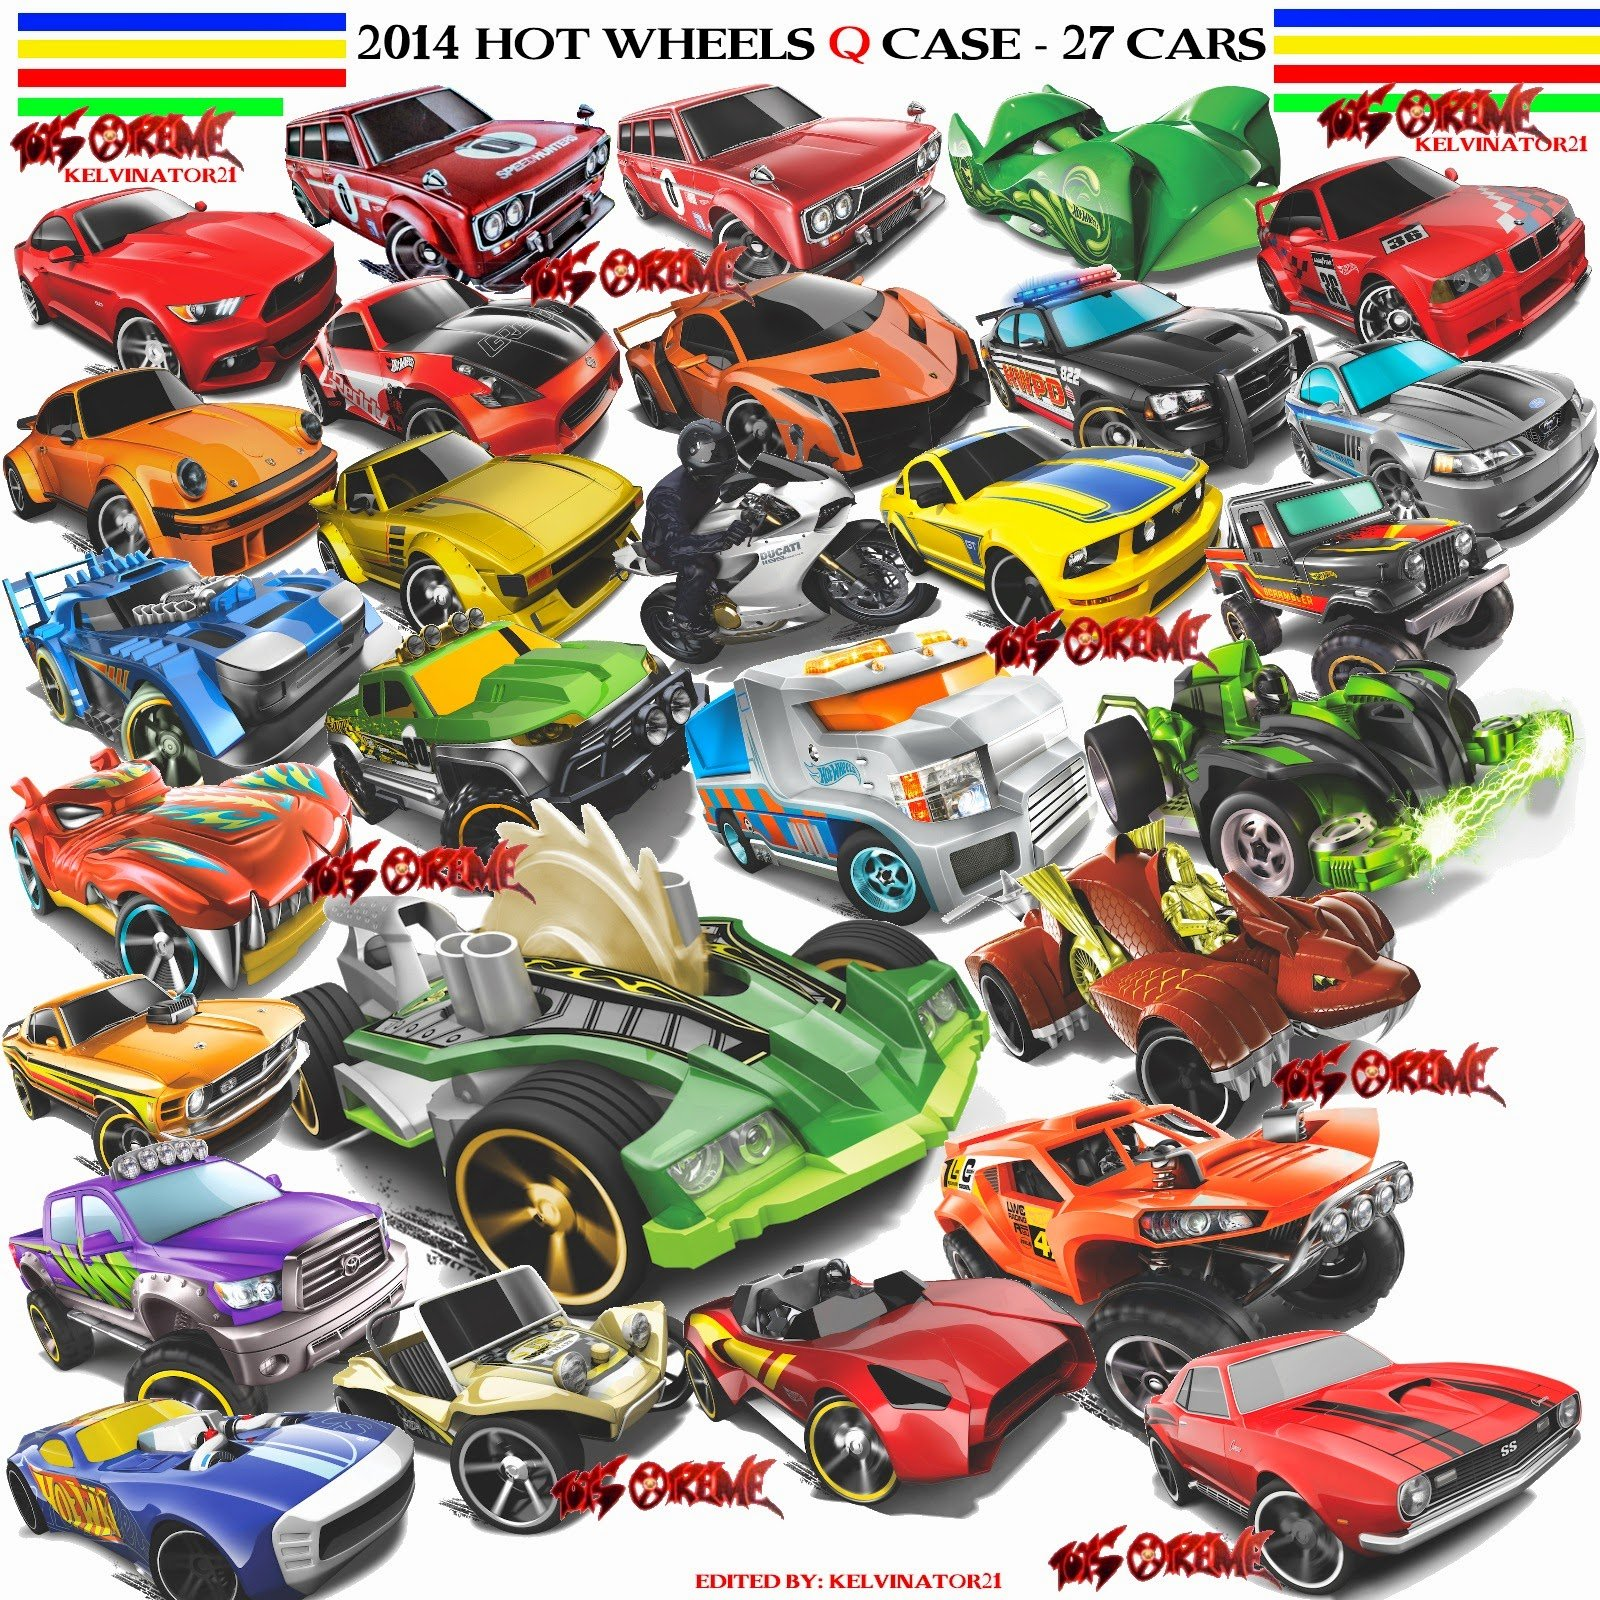 hot wheels rod rods toy toys race racing hot wheels. Black Bedroom Furniture Sets. Home Design Ideas